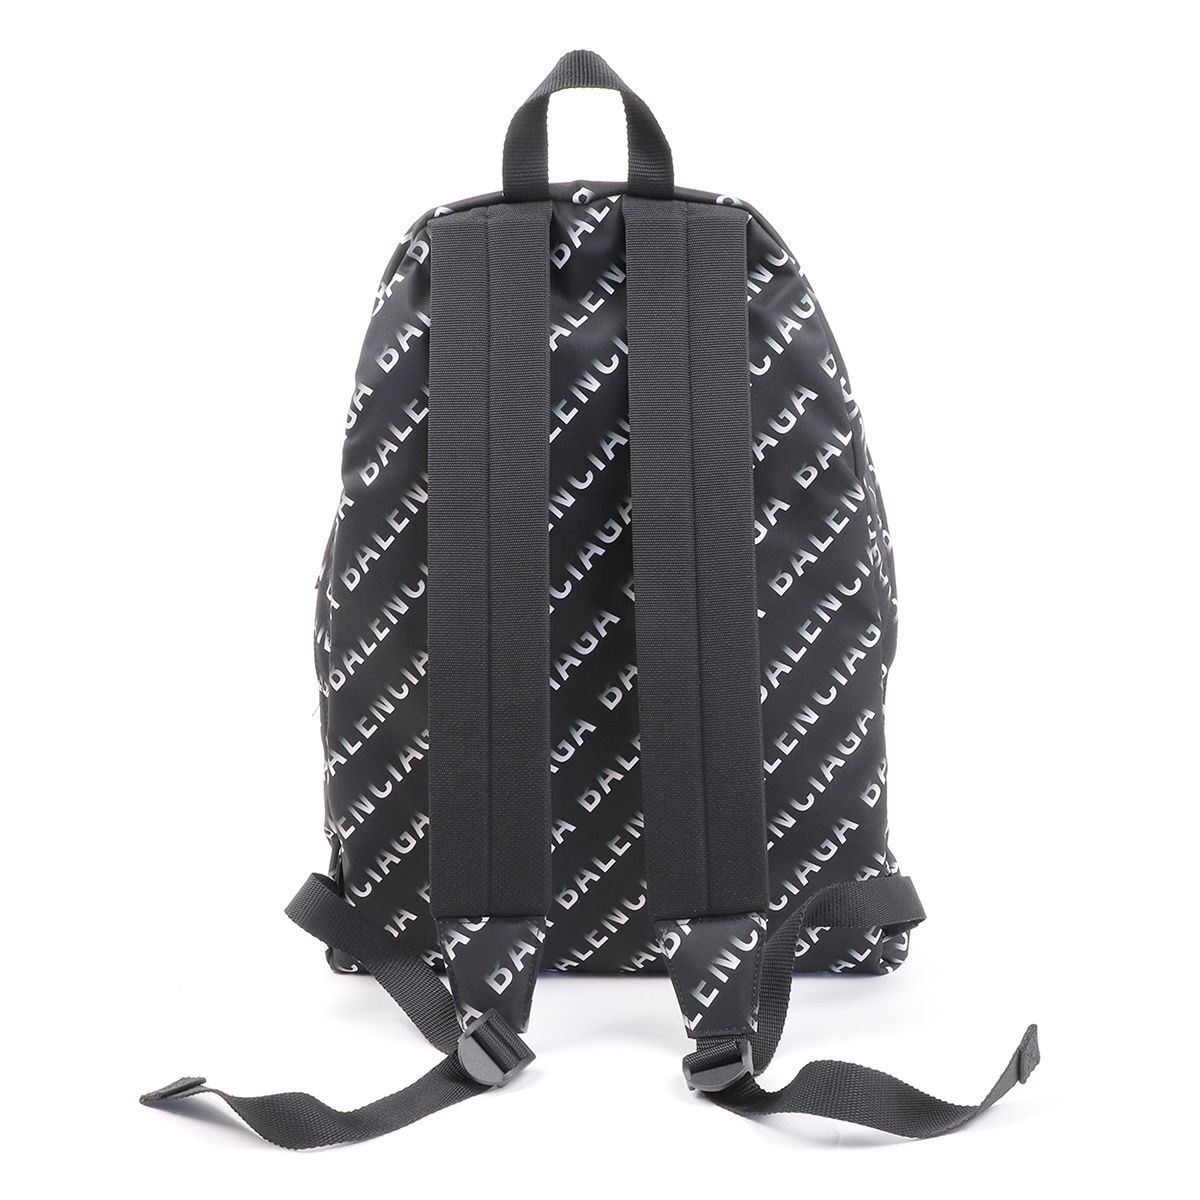 BALENCIAGA H856X/BACKPACK / 1090 : BLACK&WHITE